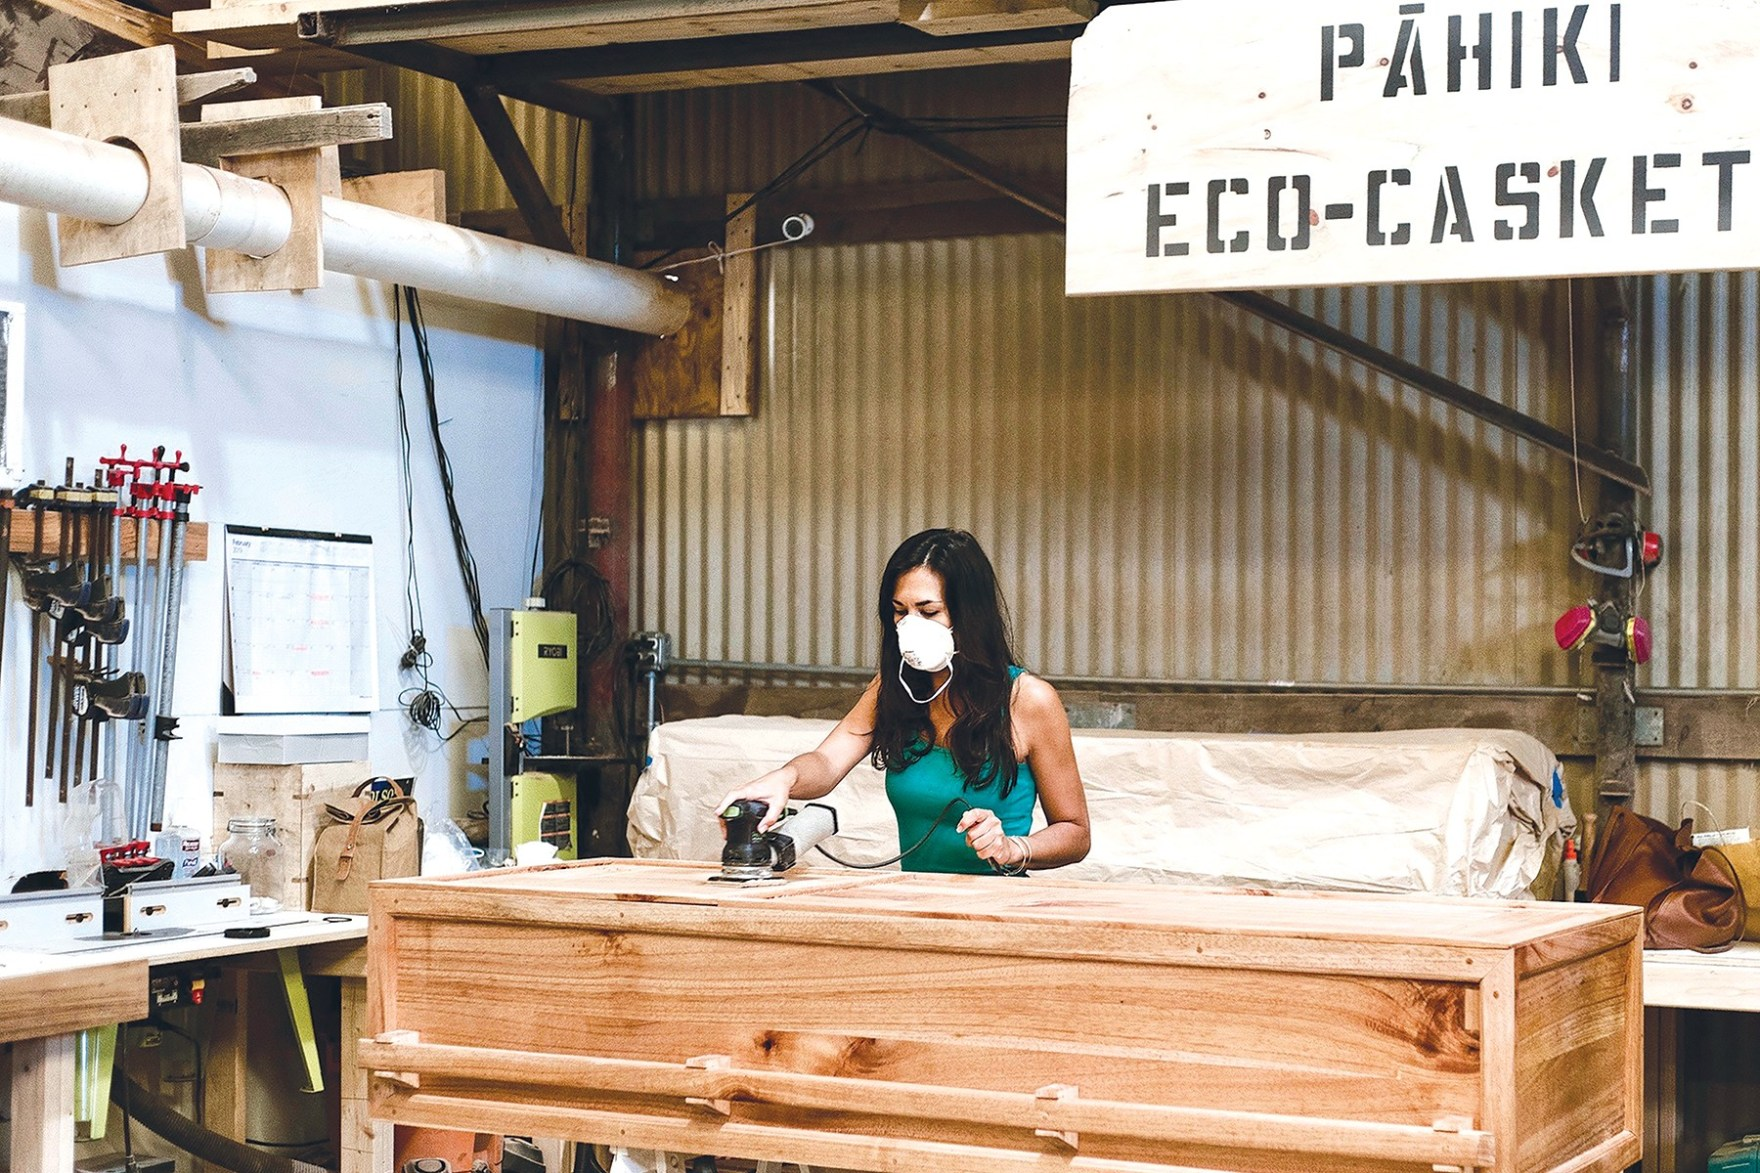 Cortney-Gusick-finish-sanding-Pāhiki's-100_-locally-reclaimed-biodegradable-and-invasive-Albizia-eco-casket